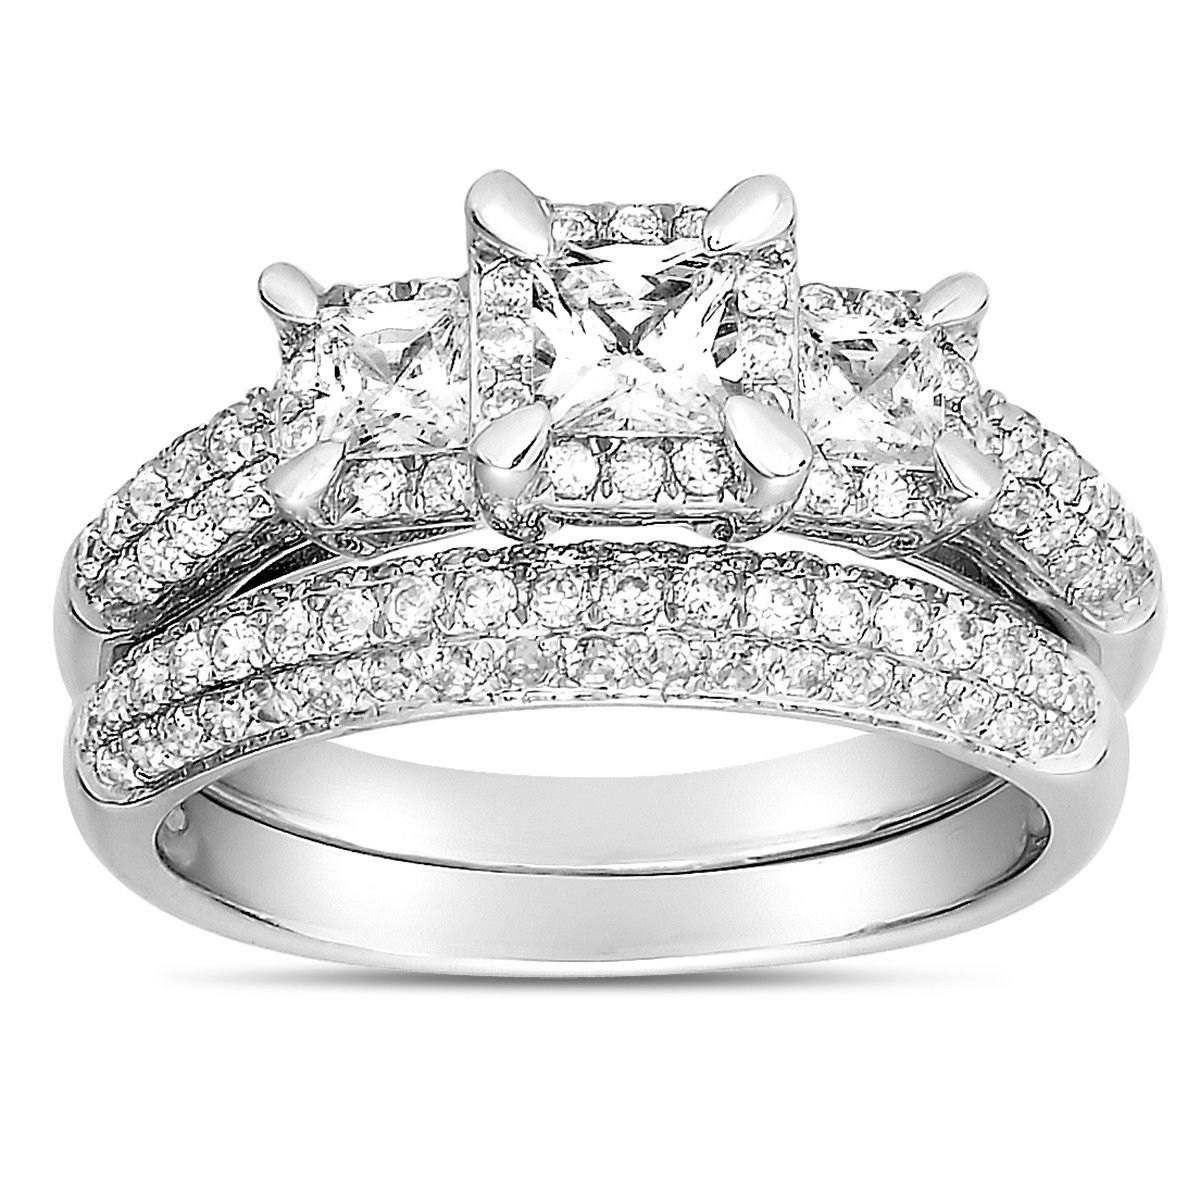 2 Carat Three Stone Trilogy Princess Diamond Wedding Ring Set In For Diamond Wedding Rings For Women (View 1 of 15)